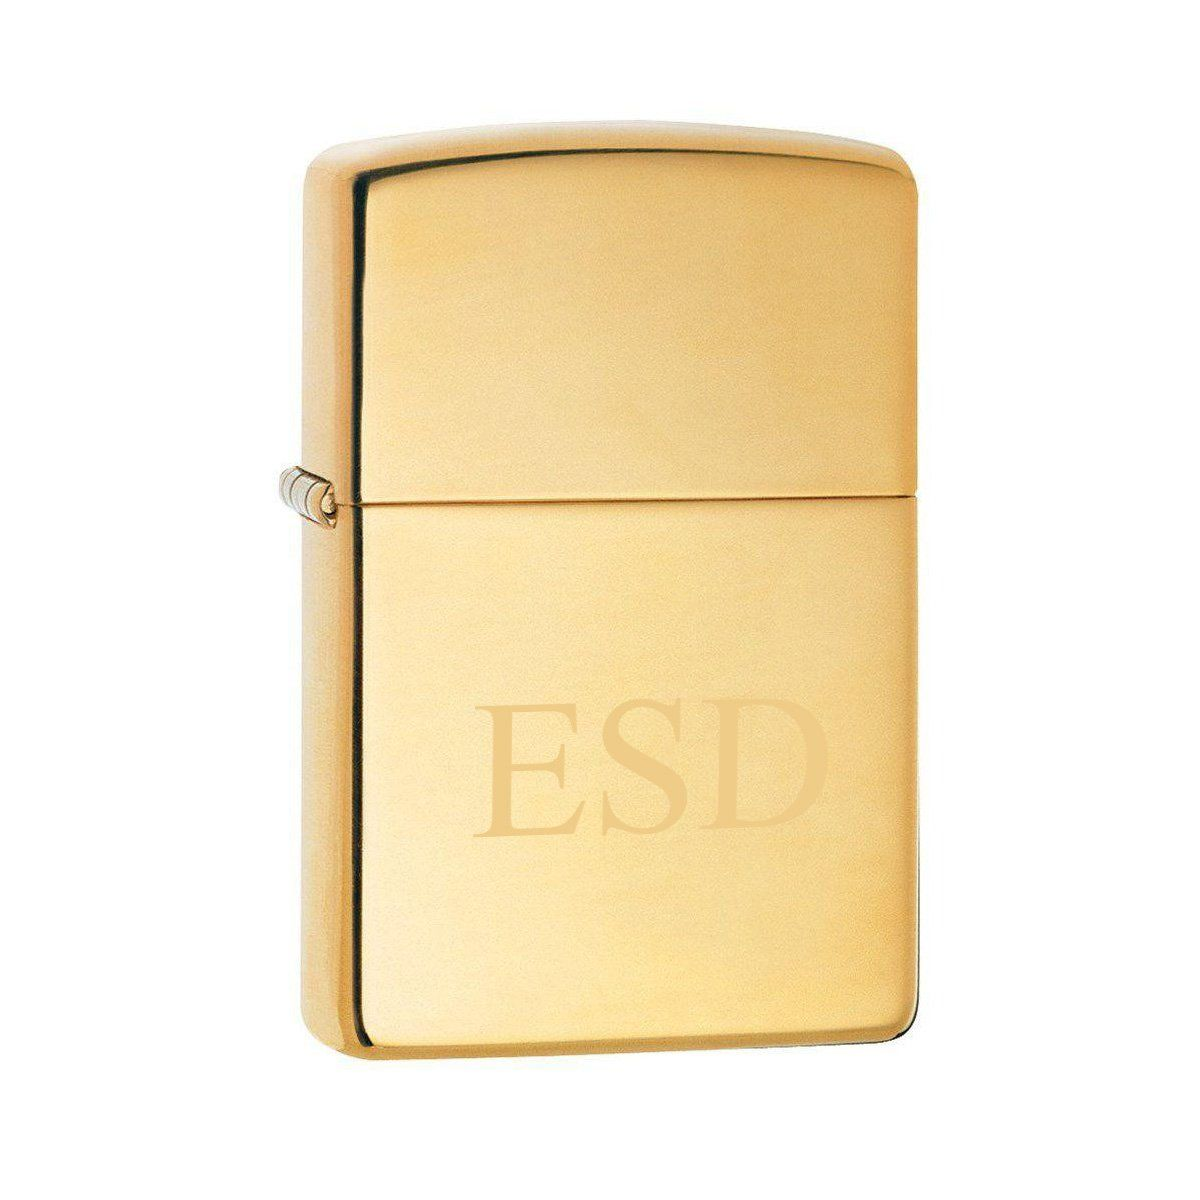 Personalized Lighter - Zippo - High Polish Brass